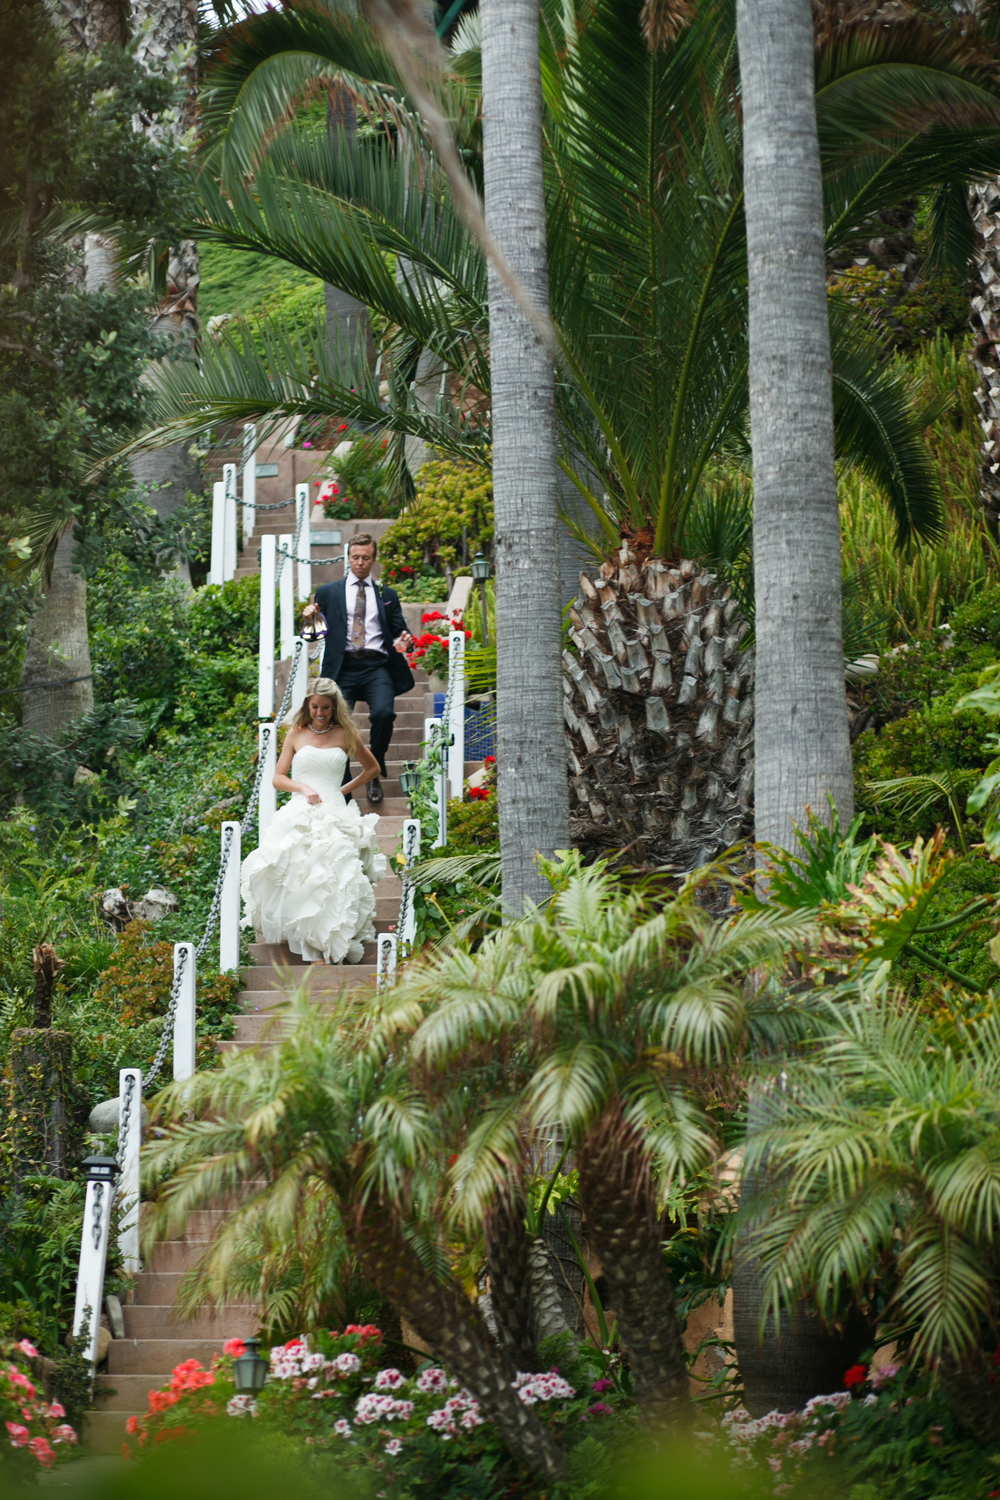 NYC-Wedding-Planner-Andrea-Freeman-Events-Malibu-Private-Estate-13.jpeg